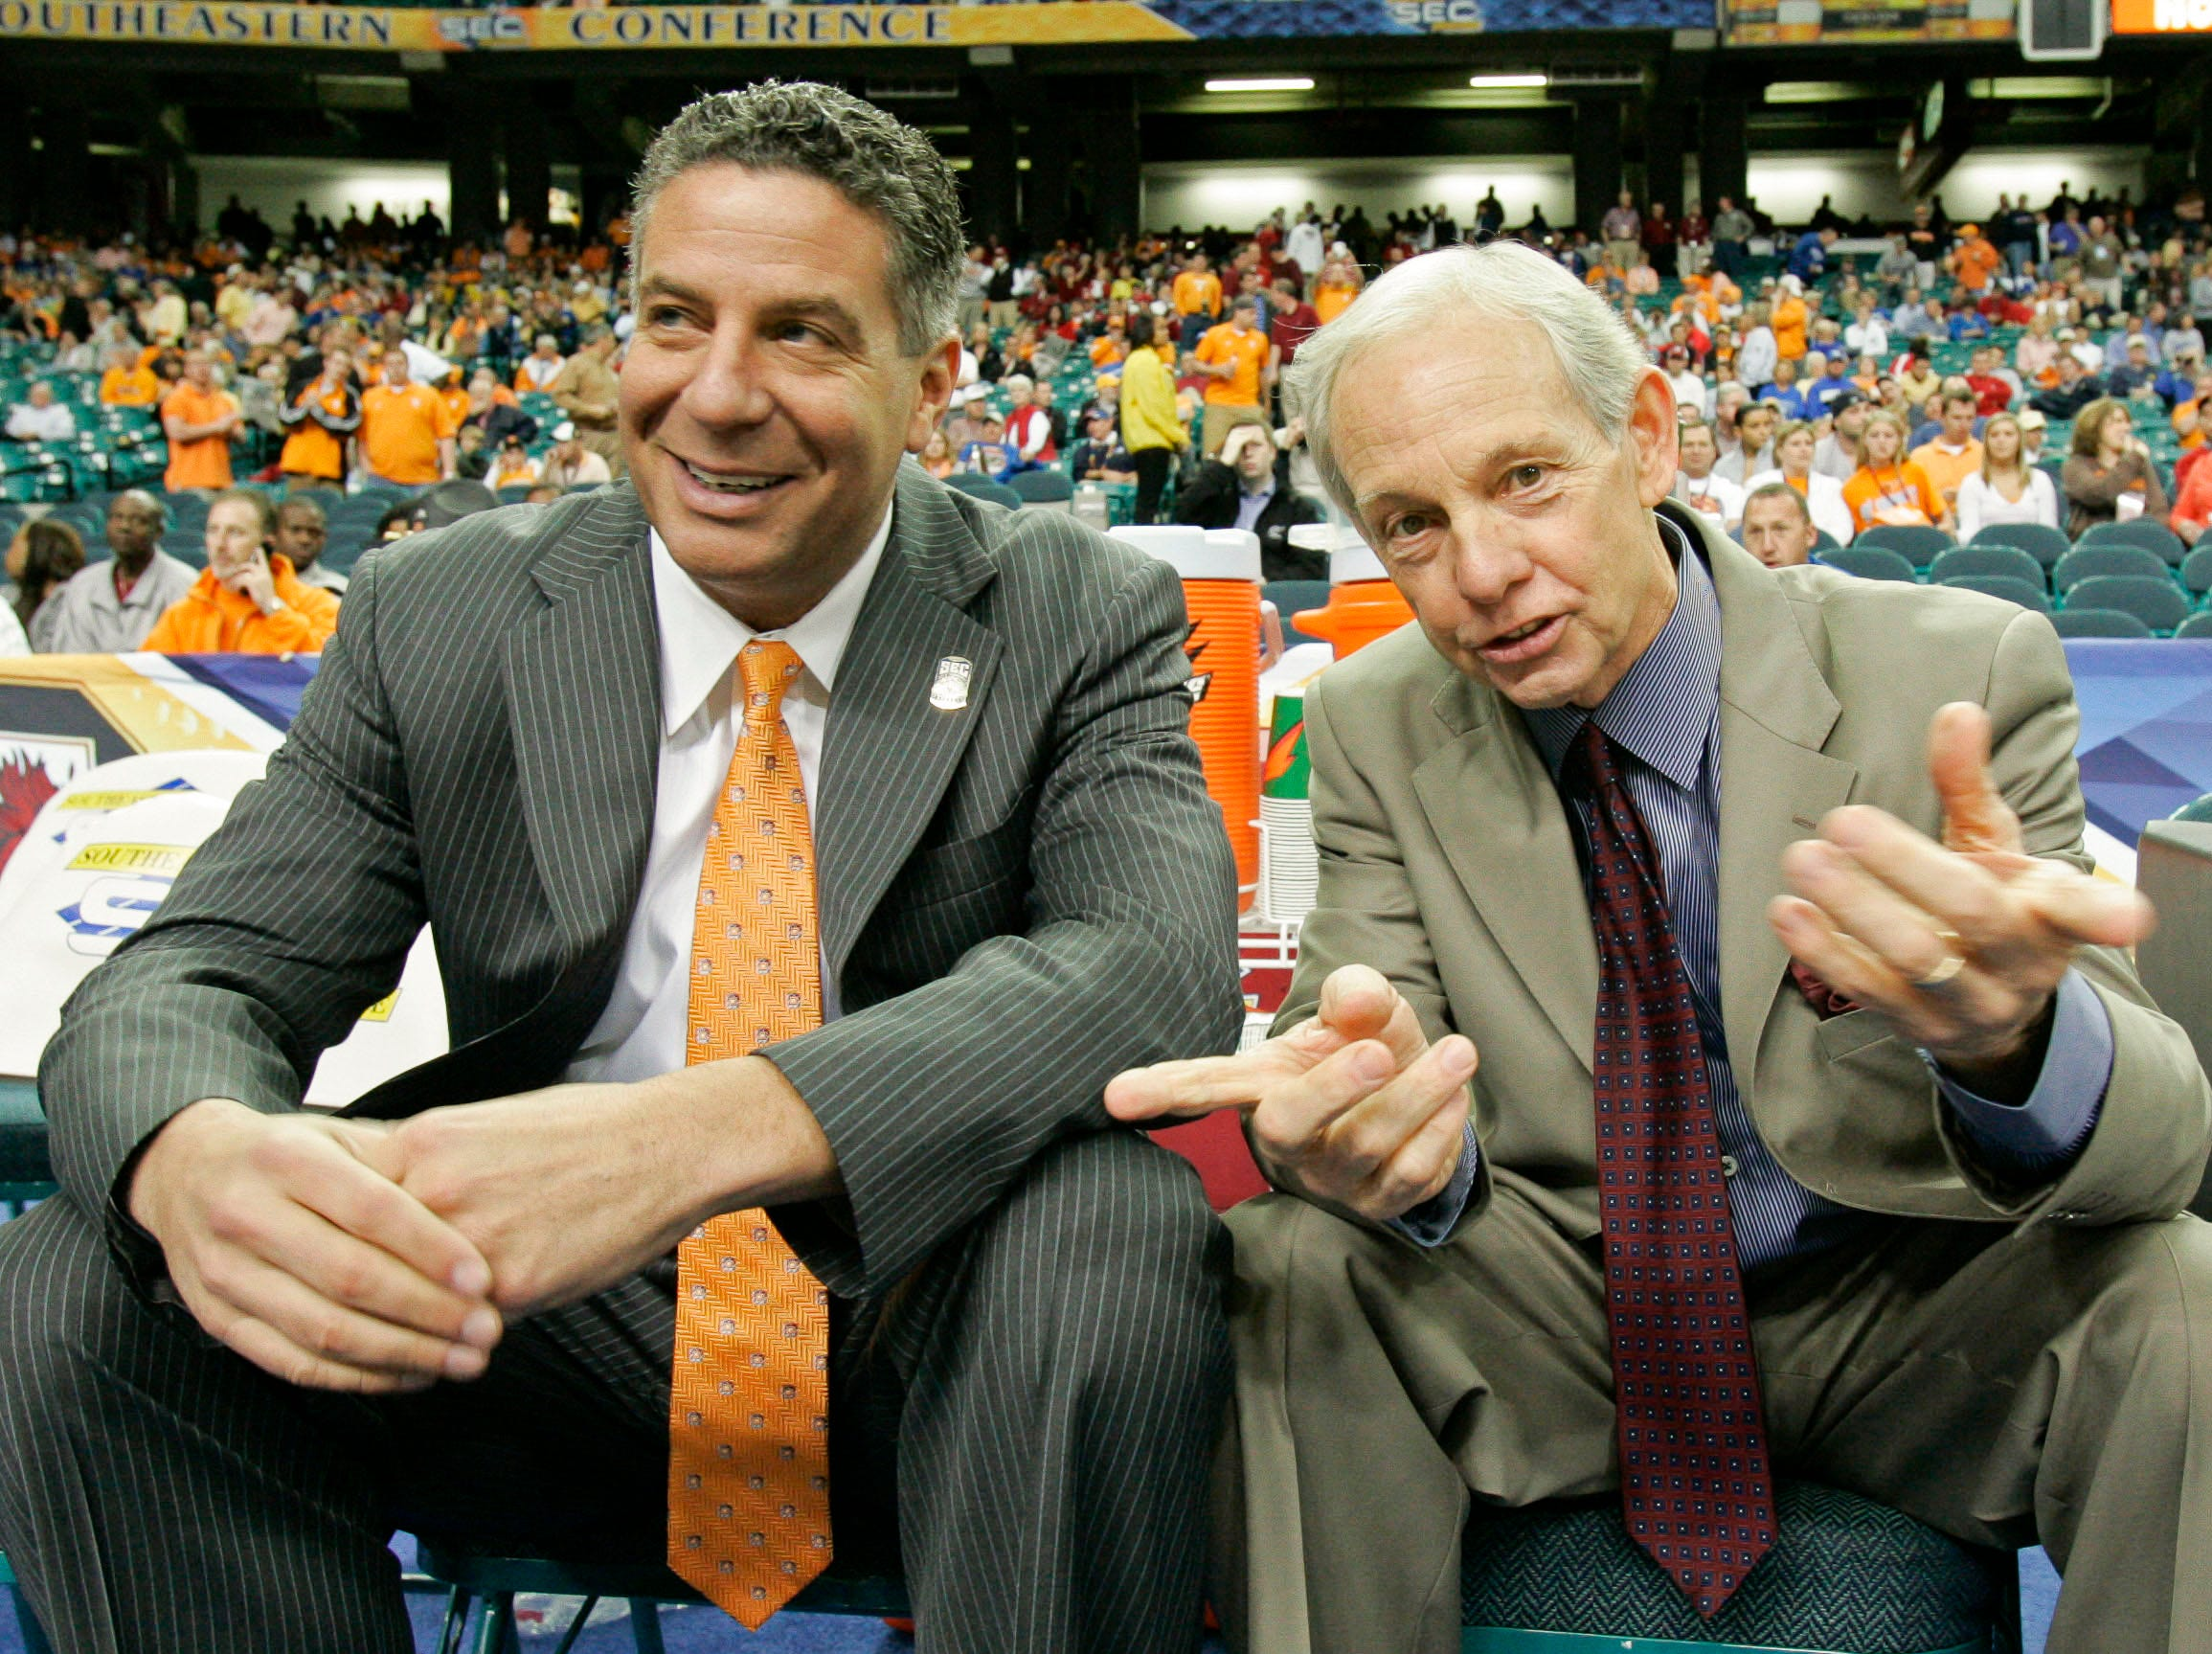 Tennessee coach Bruce Pearl, left, talks with South Carolina coach Dave Odom before the start of their game in the SEC Basketball tournament in the Georgia Dome in Atlanta Friday, March 14, 2008. Odpm has announced he will retire at the conclusion of this season. (AP Photo/Phil Coale)